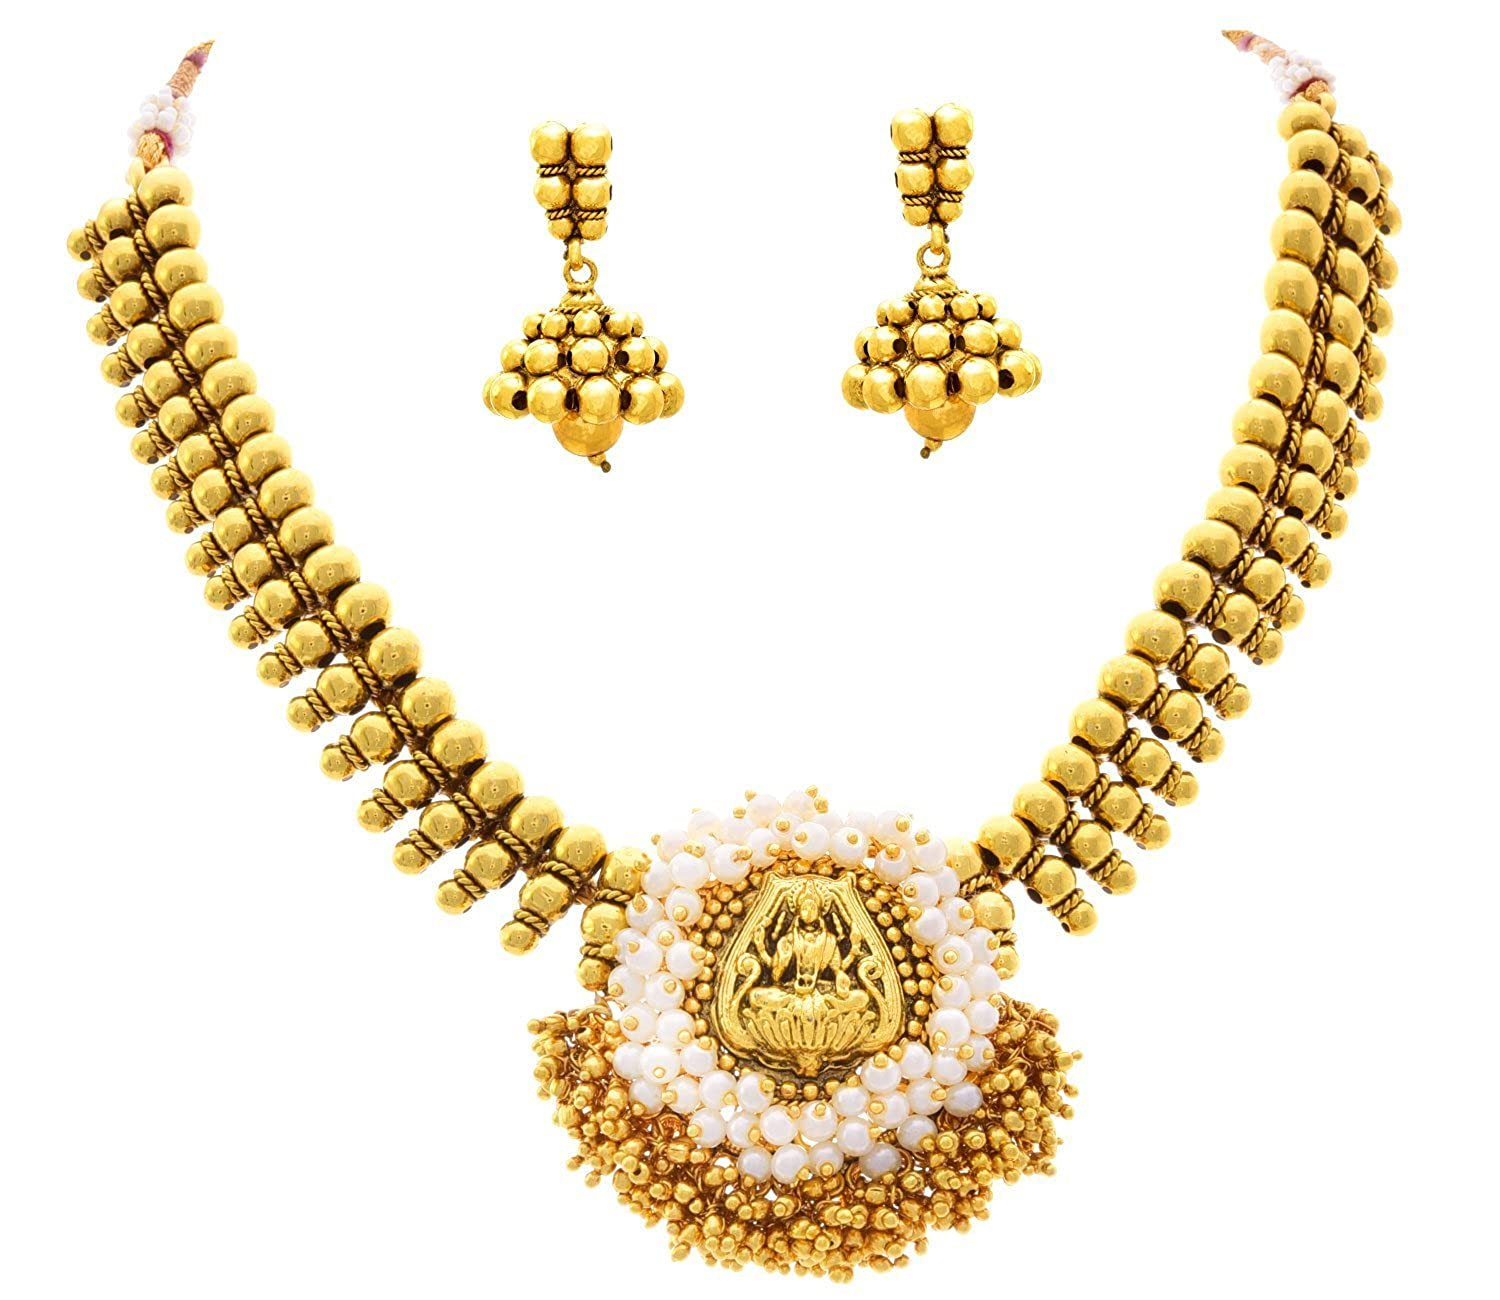 98c118ed06 Buy JFL - Magnificent Mahalaxmi Coin One Gram Gold Plated Designer Necklace/ Jewellery Set for Women & Girls. Online at Low Prices in India | Amazon ...